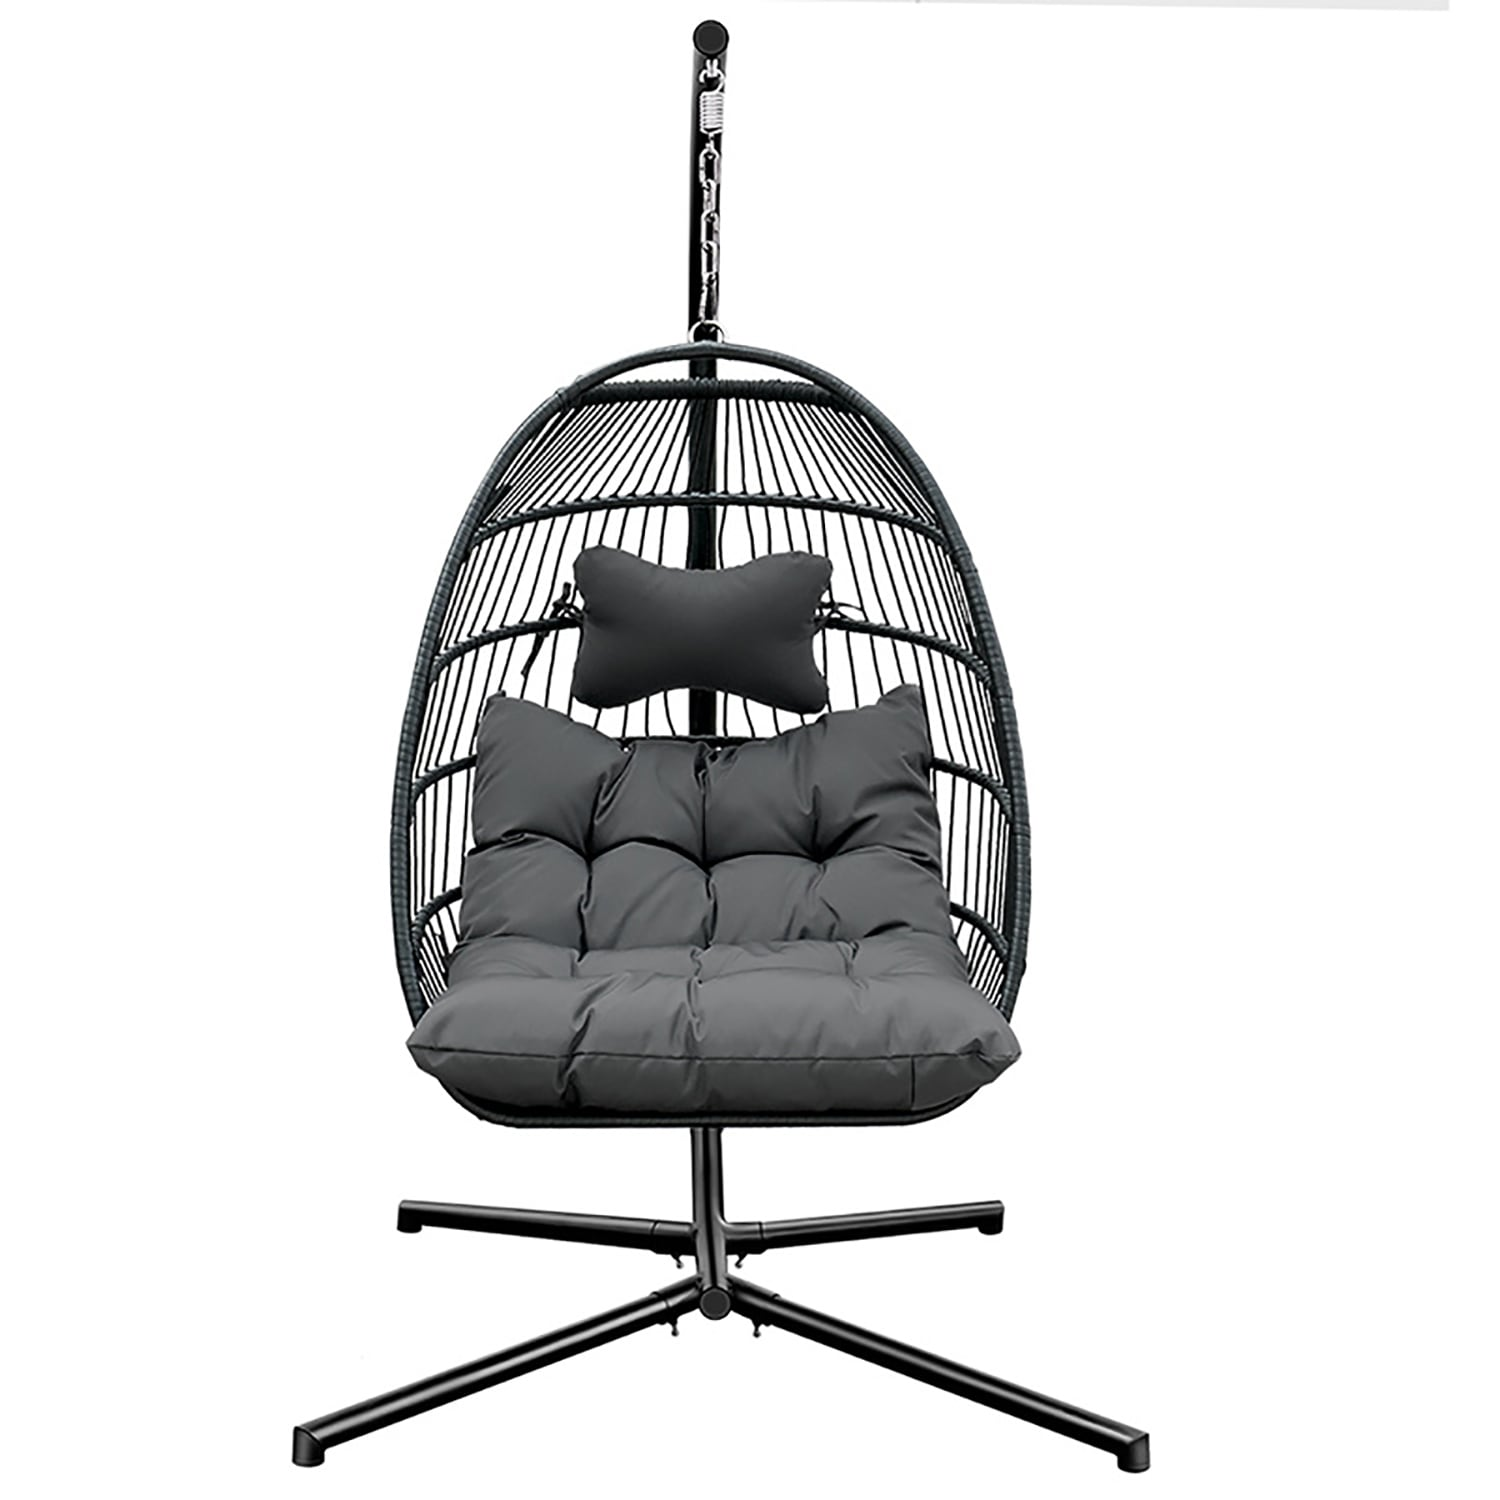 Shop Outdoor Or Home Rattan Wicker Patio Egg Shape Swing Chair With Stand On Sale Overstock 31768470